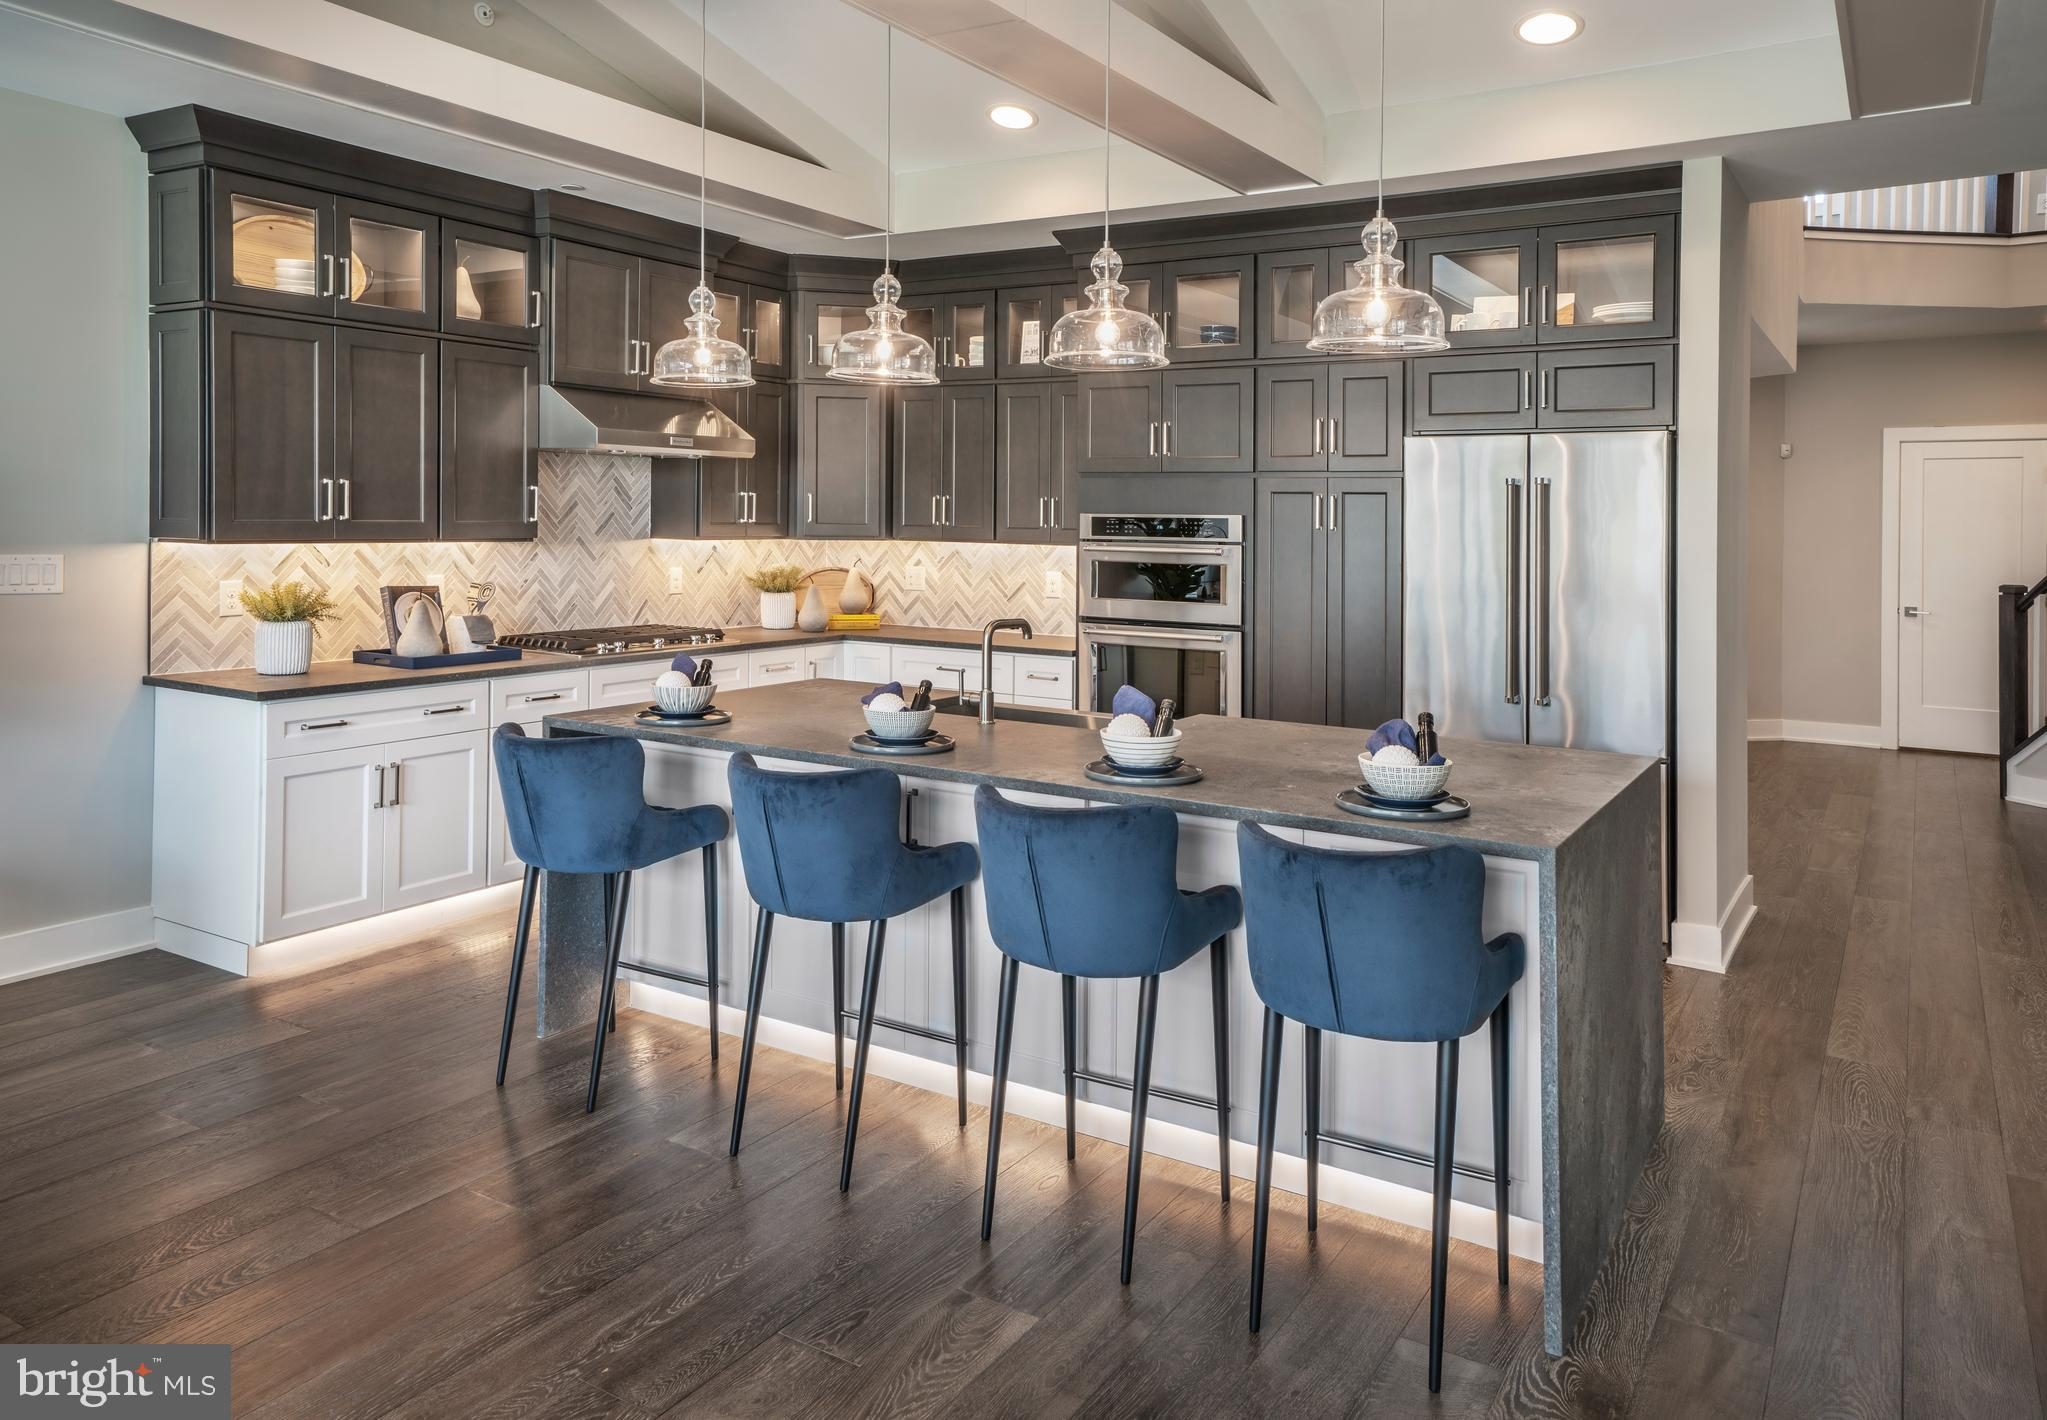 The gourmet kitchen of the fabulous Vassar is centrally located, making it the hub for family gatherings. The first-floor master bedroom boasts a cathedral ceiling, ample closet space, and a lovely master bath with a dual-sink vanity, an over-sized shower with a seat, and a private toilet area. The spacious second-floor bonus room offers versatile living space. Other highlights include a welcoming two-story foyer, a spacious great room with plenty of windows for natural light, a formal dining room, and large secondary bedrooms--one with a cathedral ceiling and a walk-in closet. Taxes to be determined. Photos are images only and should not be relied upon to confirm applicable features.